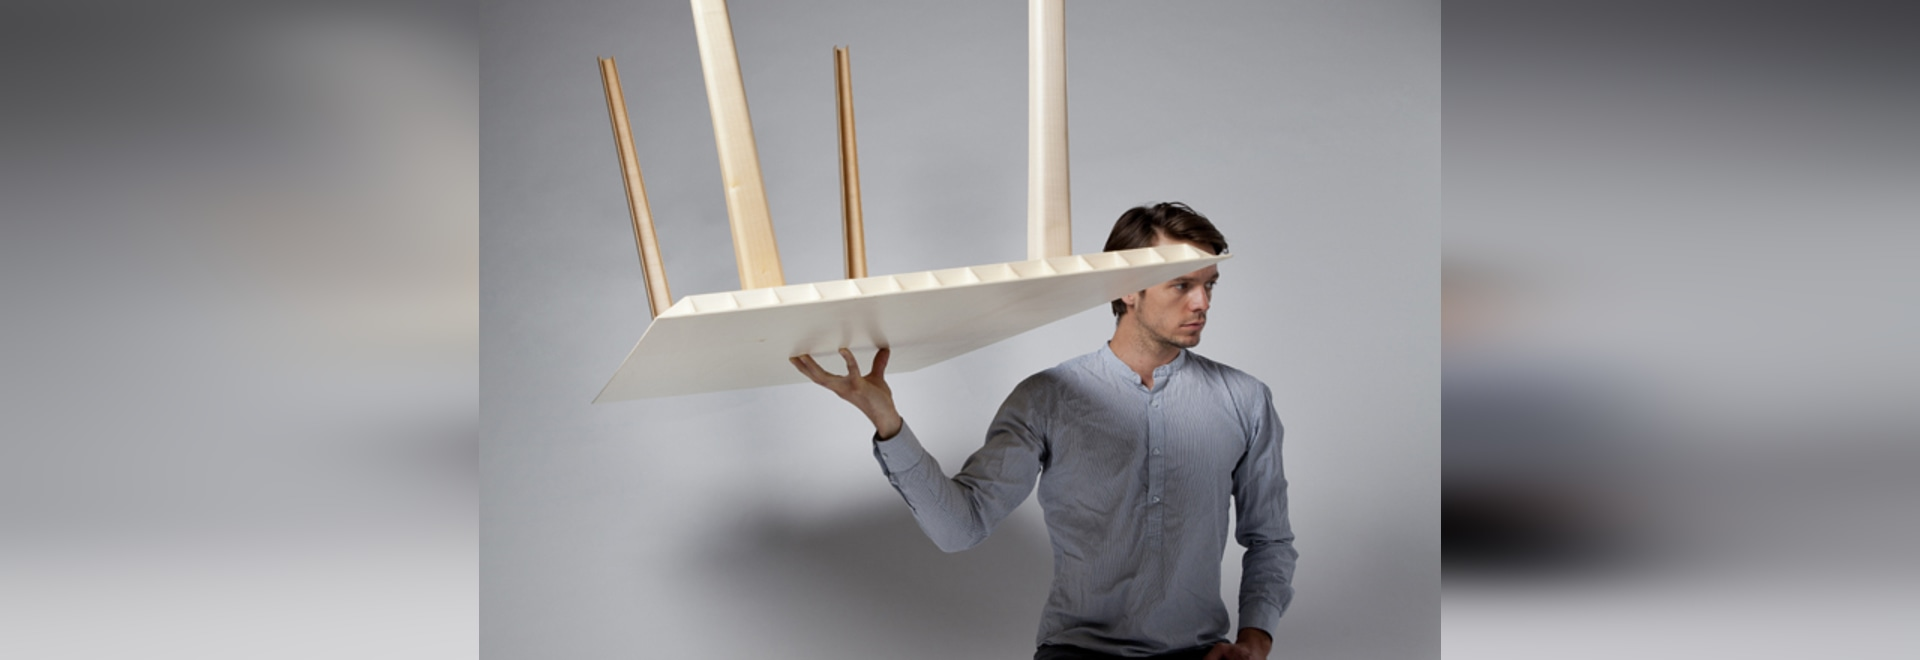 A WOODEN TABLE THAT WEIGHS JUST 4.5 KILOGRAMS